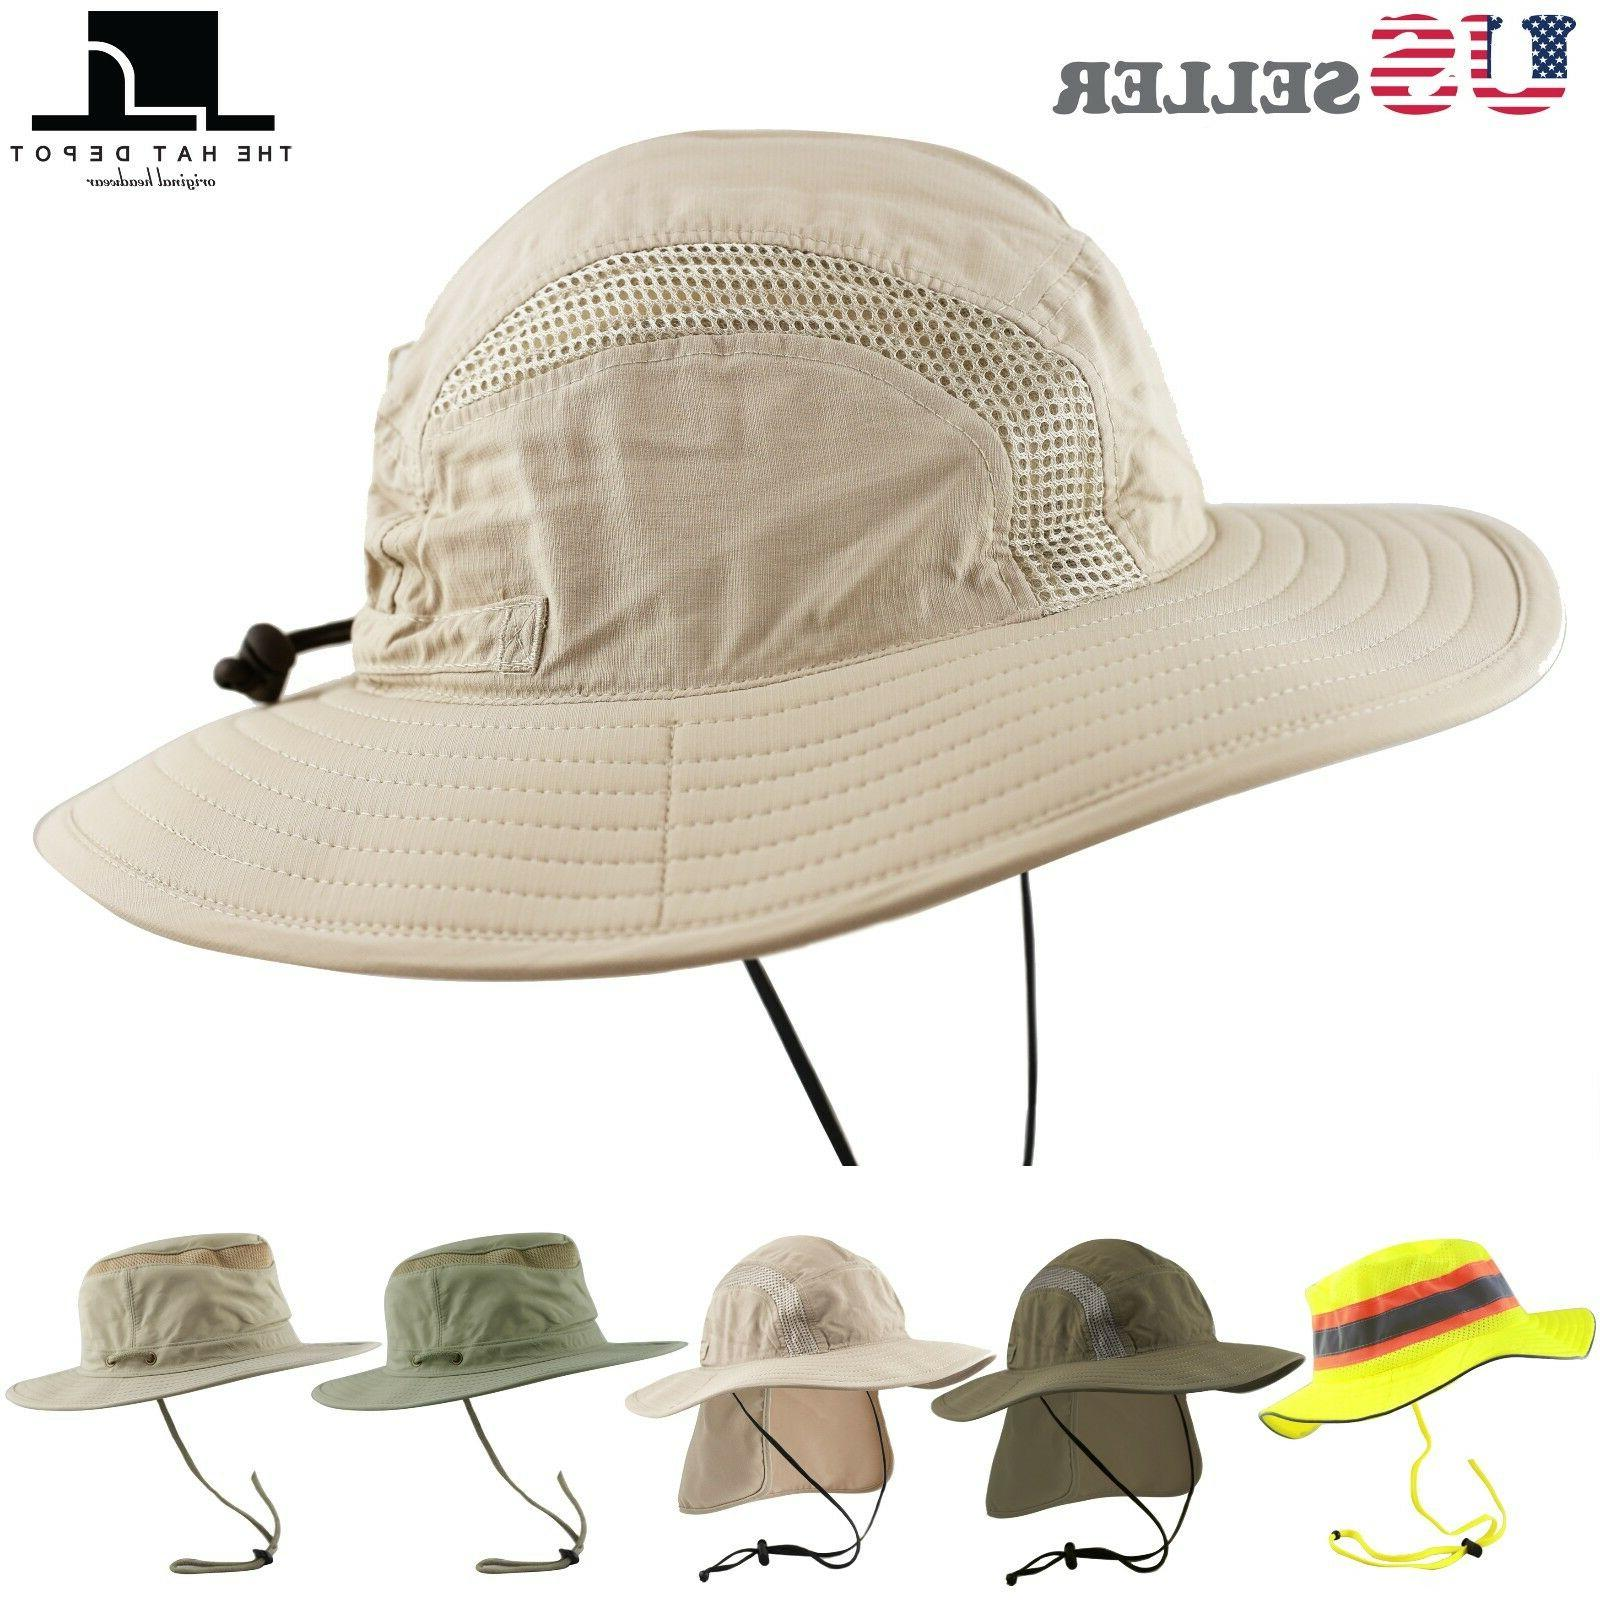 50 upf unisex outdoor safari sun mesh